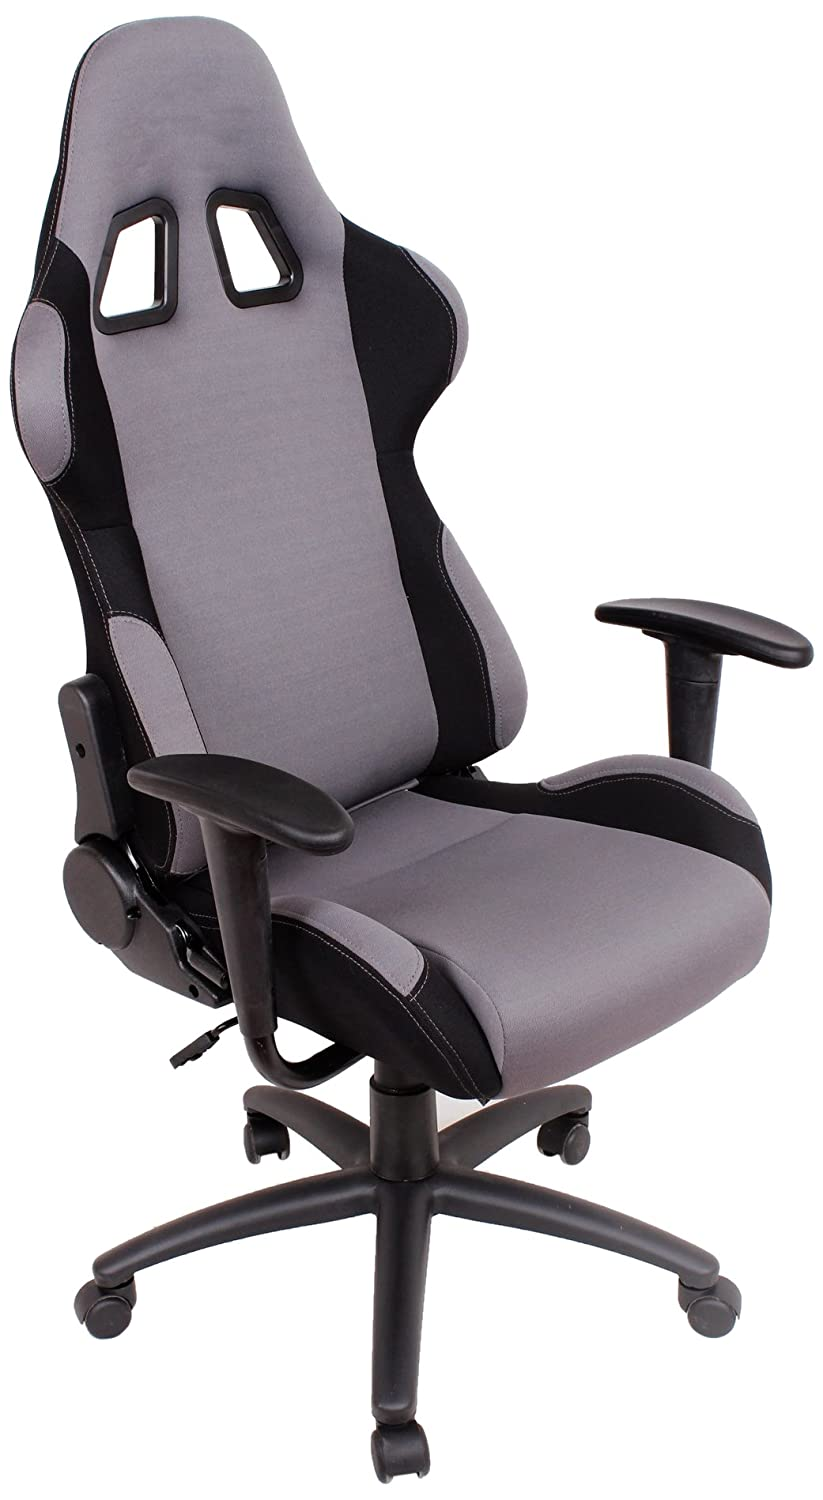 amazoncom ez lounge racing car seat office jeep gaming chair grayblack kitchen dining car seats office chairs